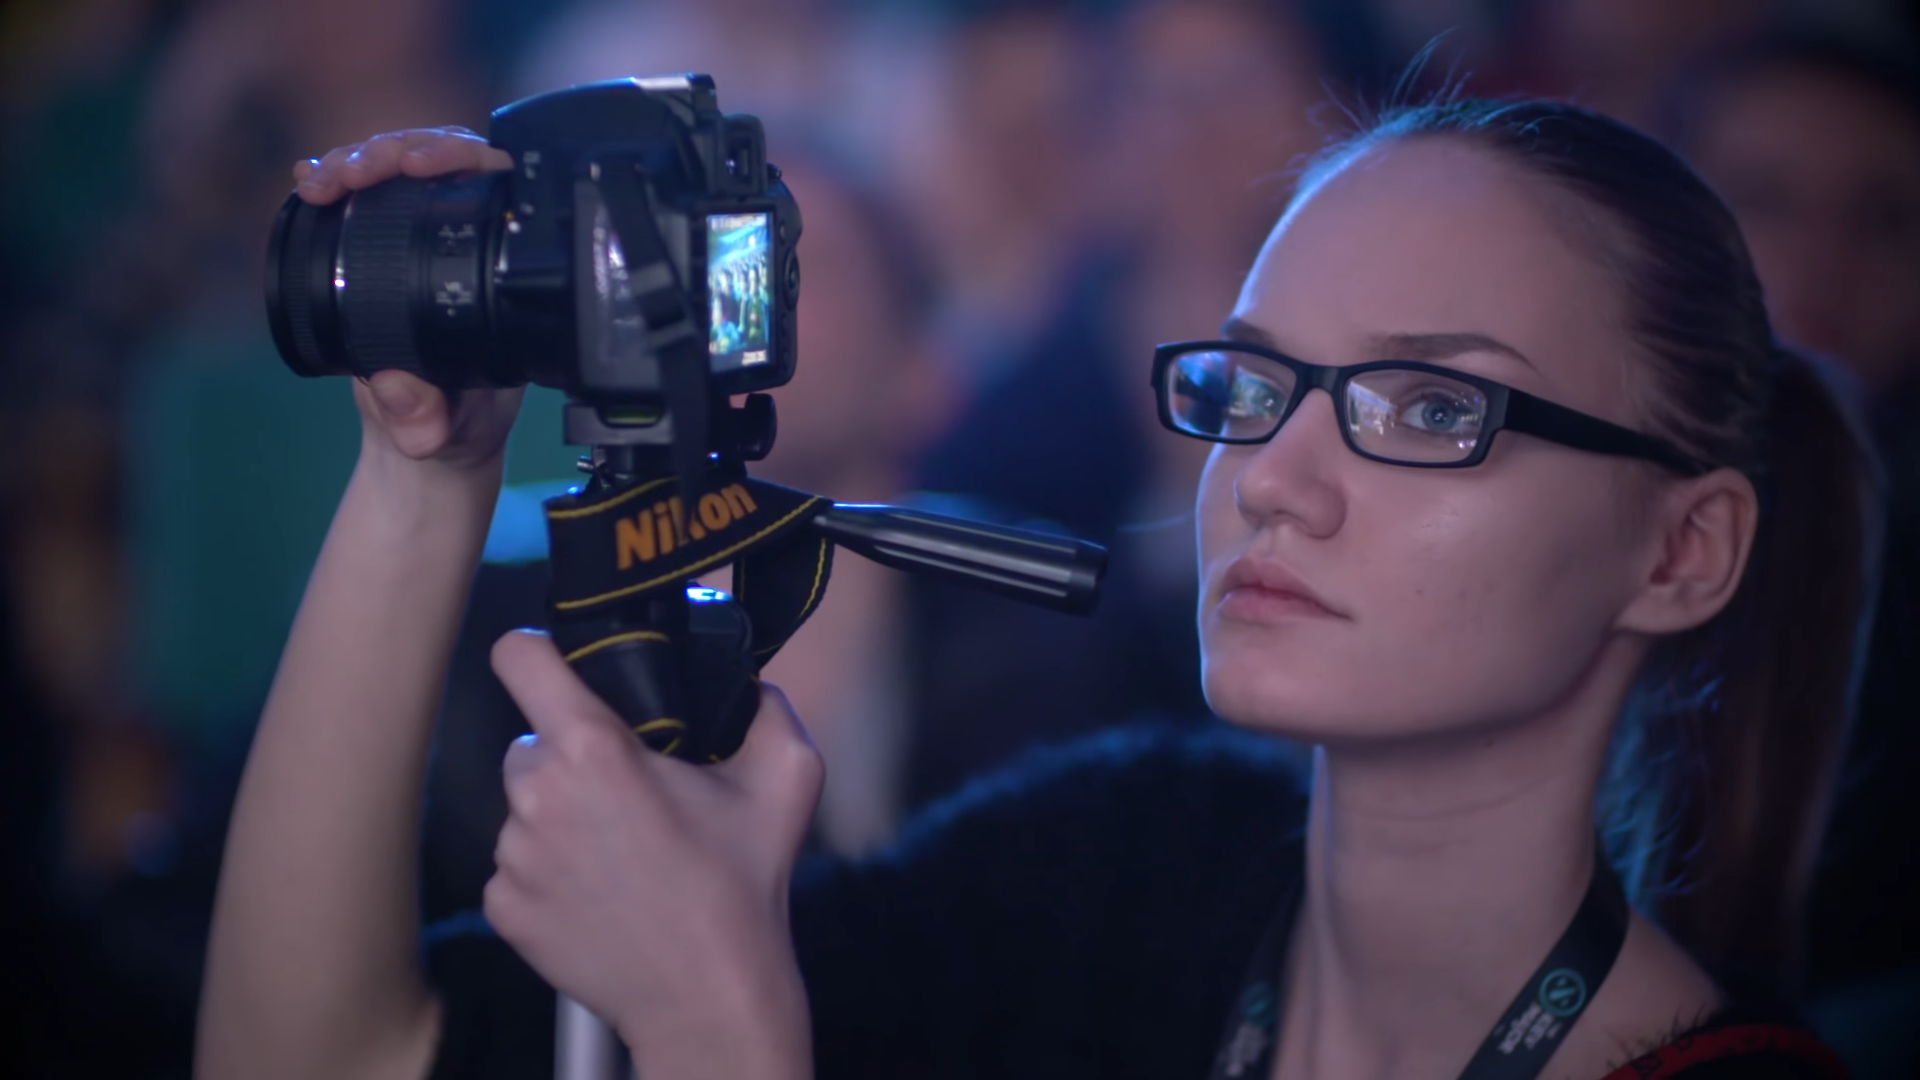 Kiev Major Concludes With Weird Montage Of Women, Production Company Later Deletes Video